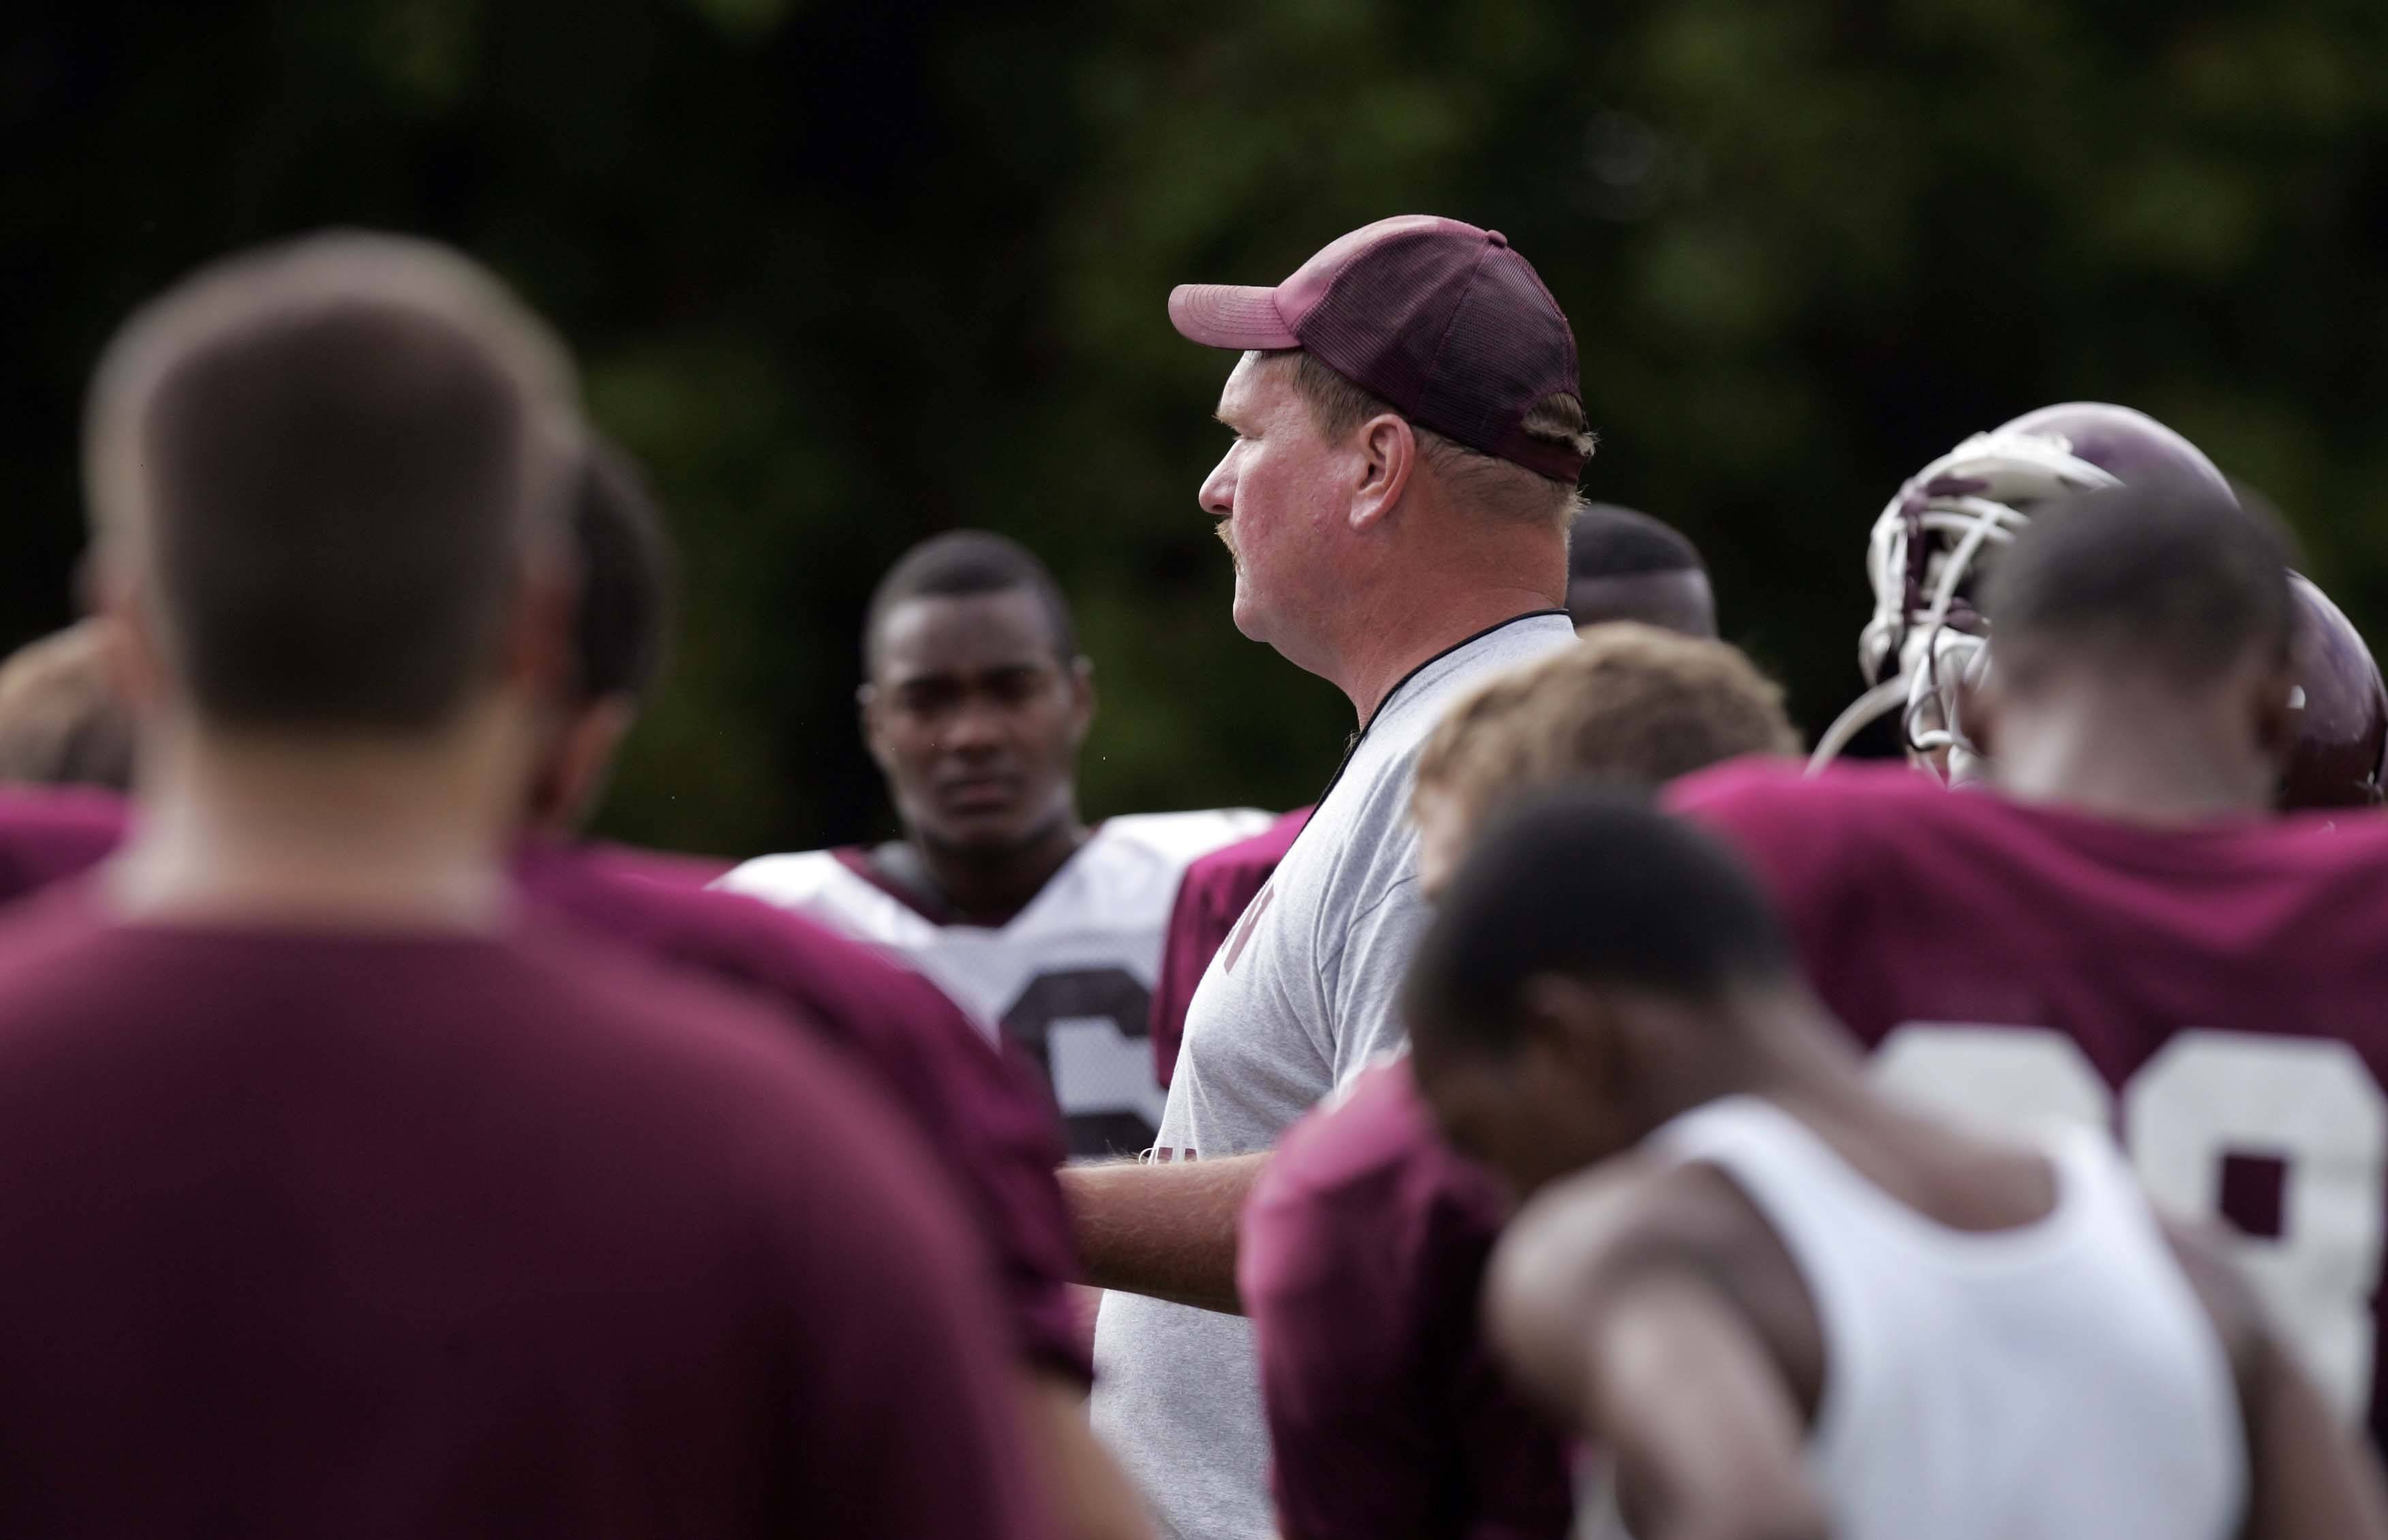 Elgin football head coach Dave Bierman will lead his Maroons against Dundee-Crown tonight in the season opener at Memorial Field.